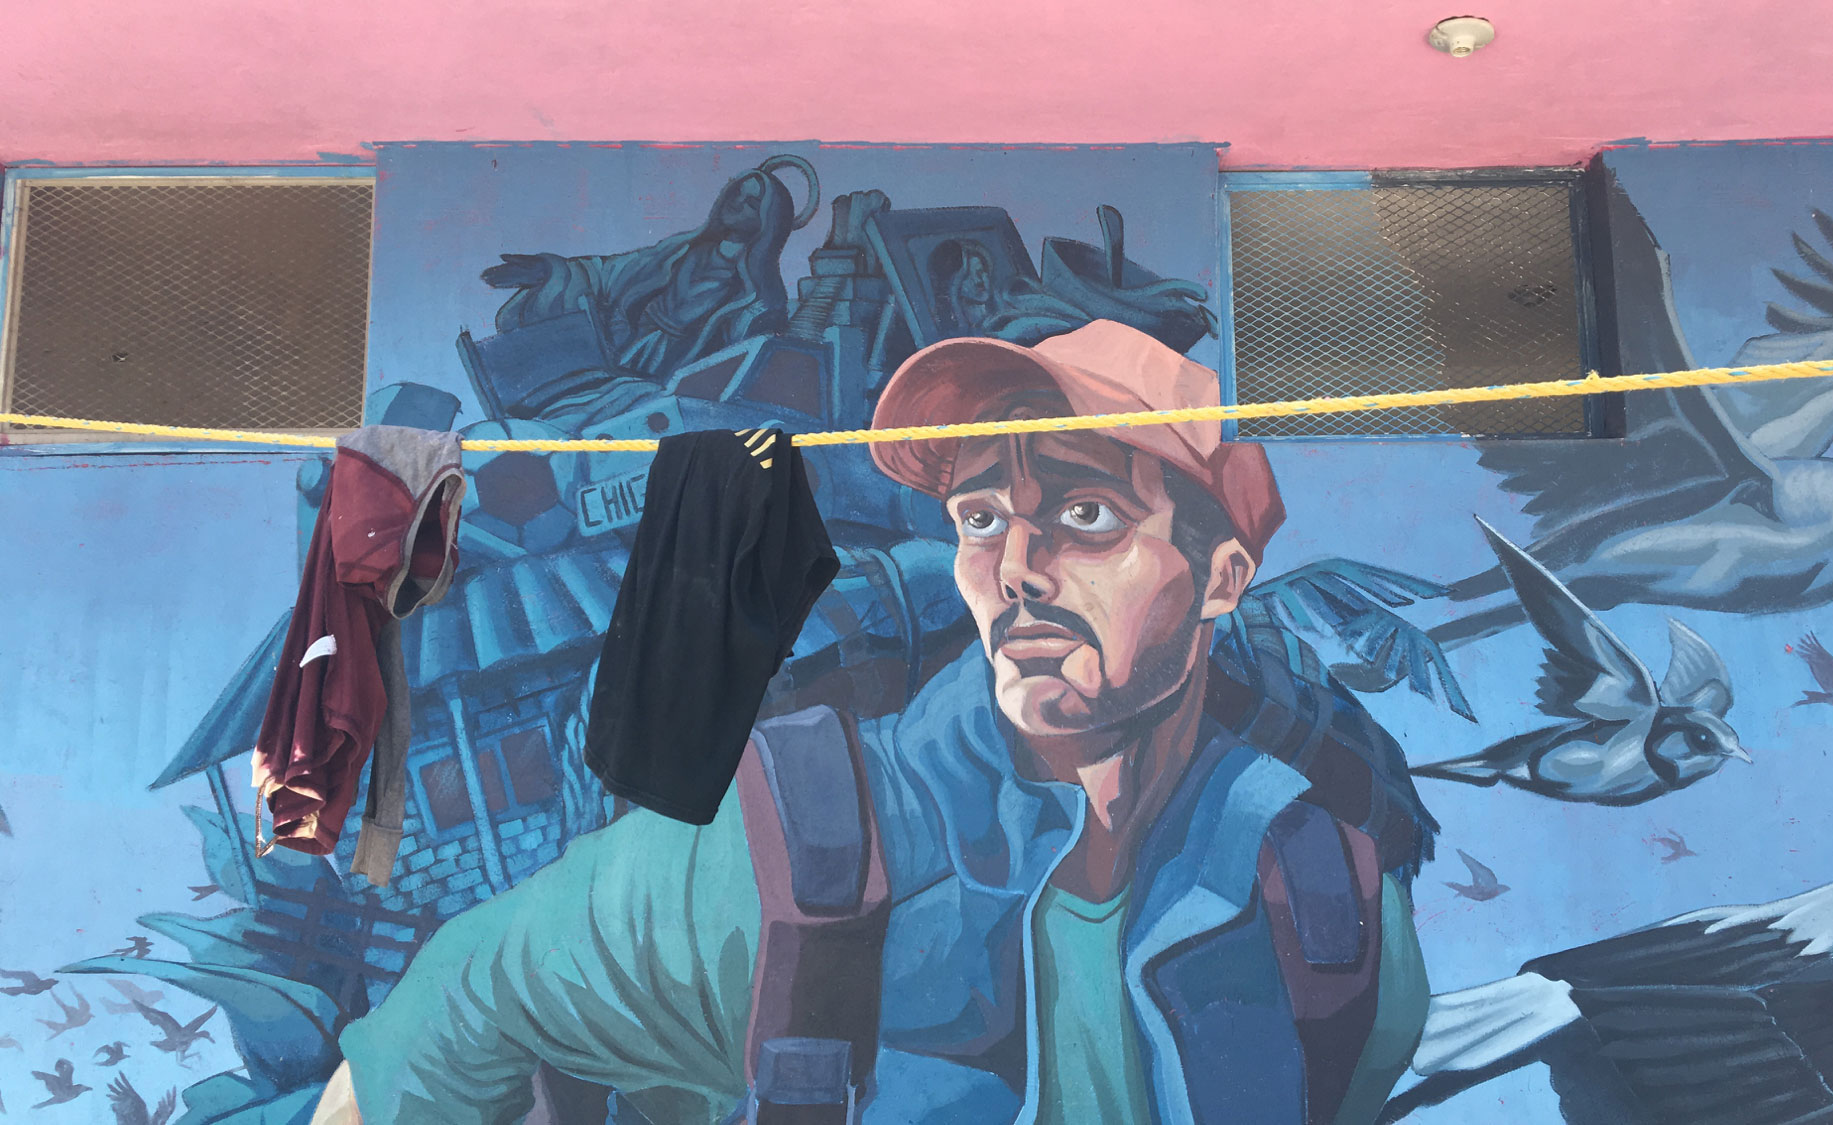 Clothes hang in front of a mural depicting a male migrant